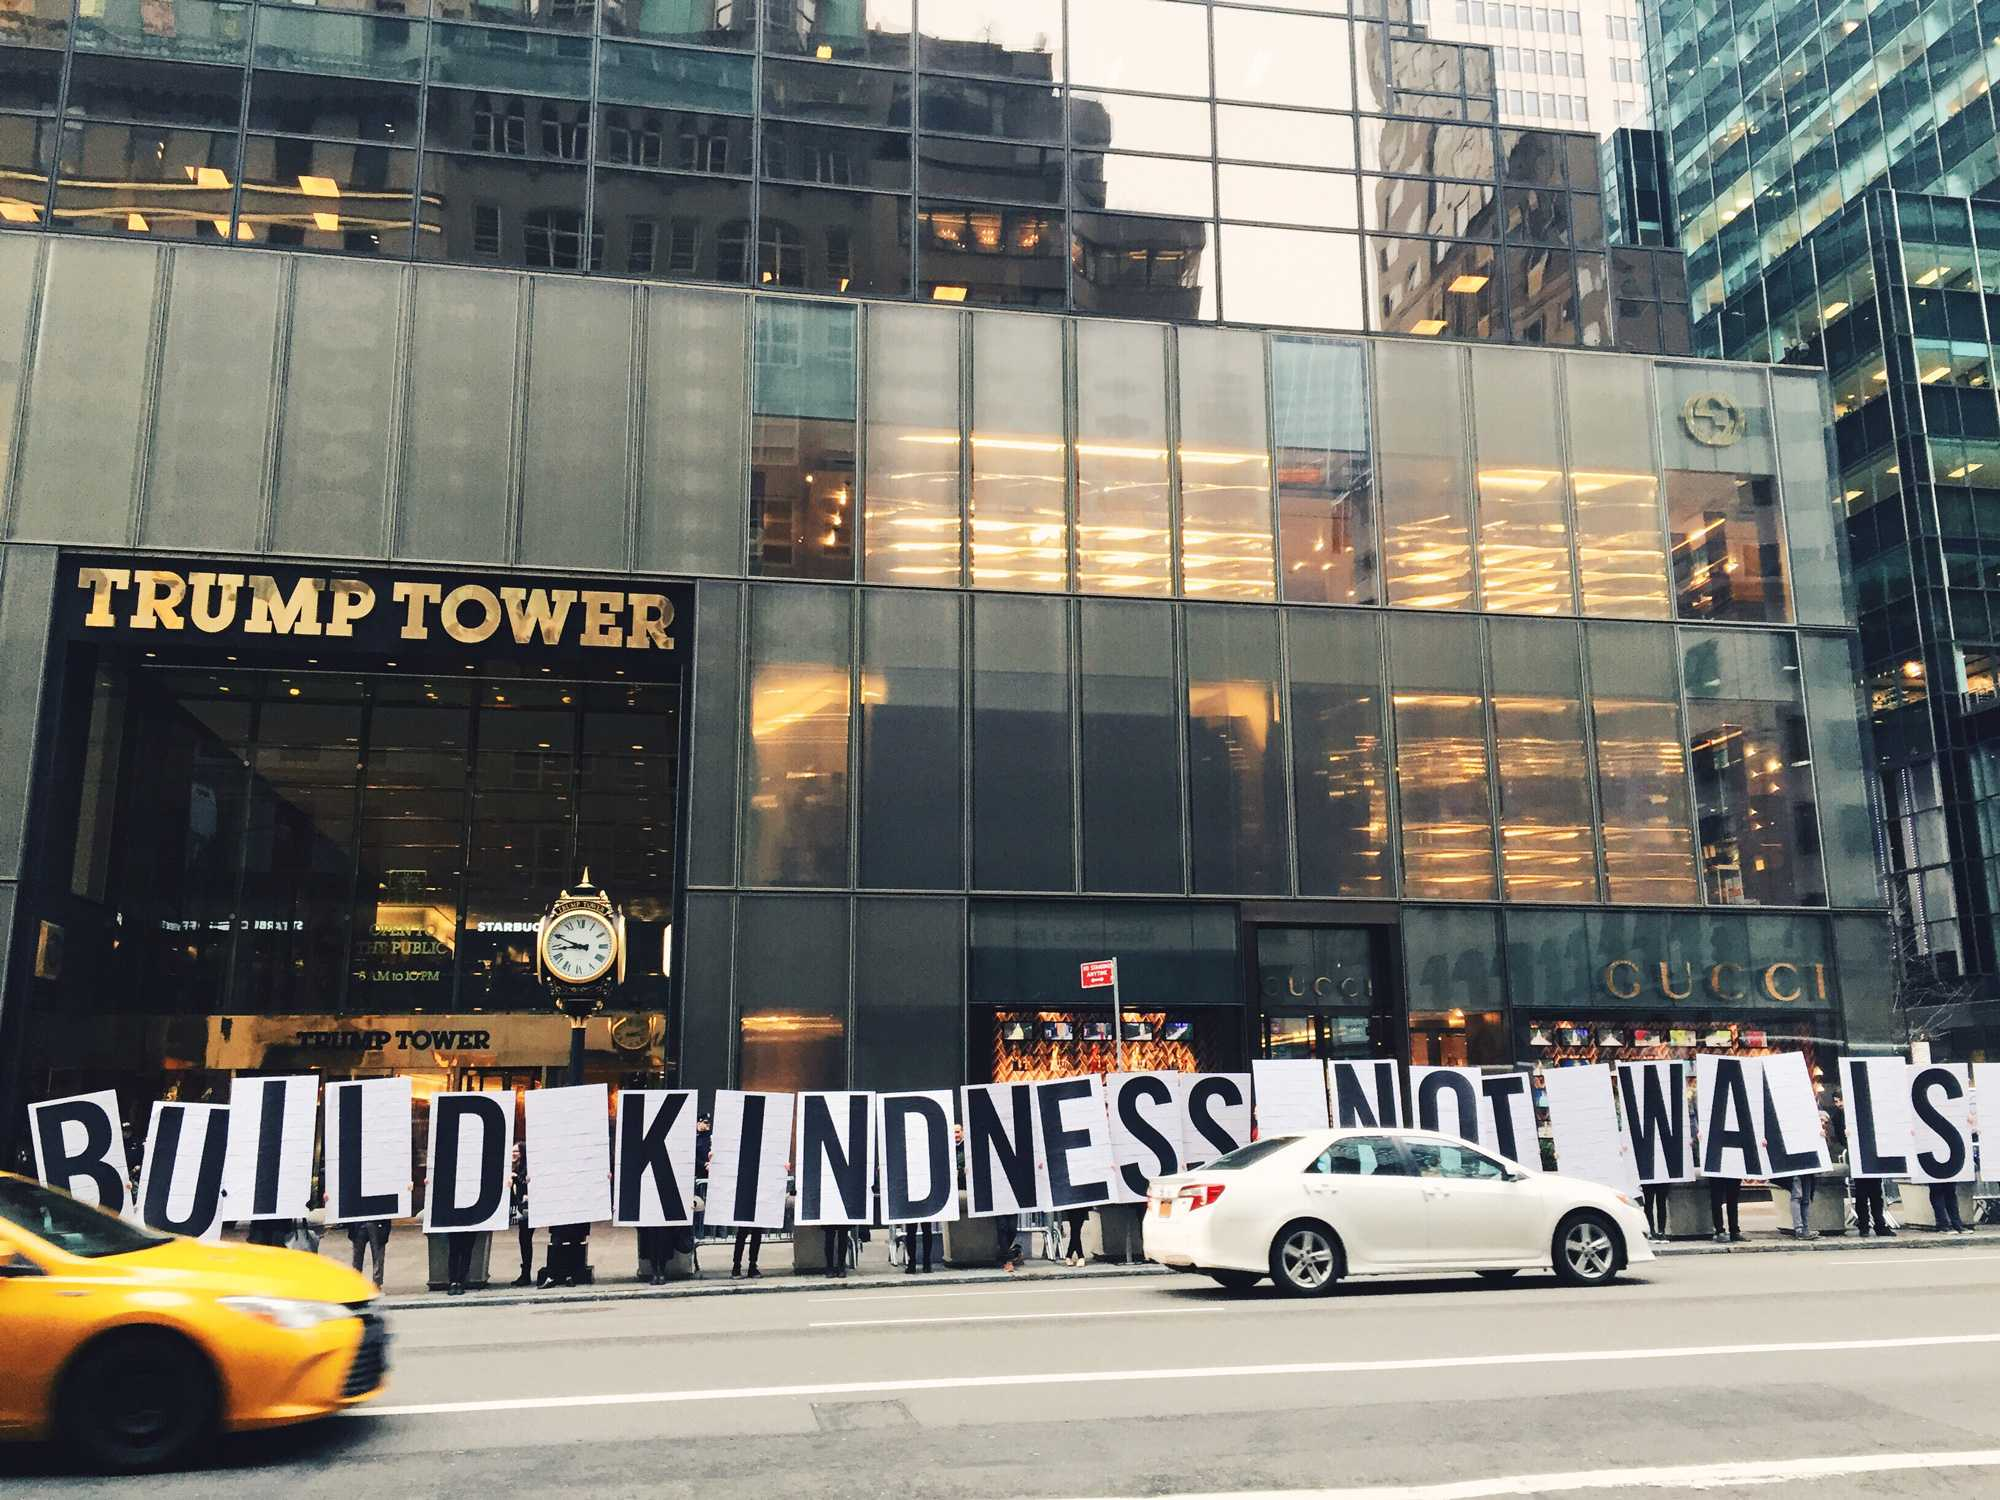 Appalachian+State+University+students+hold+up+letters+that+form+the+statement+%E2%80%9Cbuild+kindness+not+walls%2C%E2%80%9D+in+front+of+Trump+Tower+in+New+York+City.+Photo+courtesy+of+Rachel+Bowles.